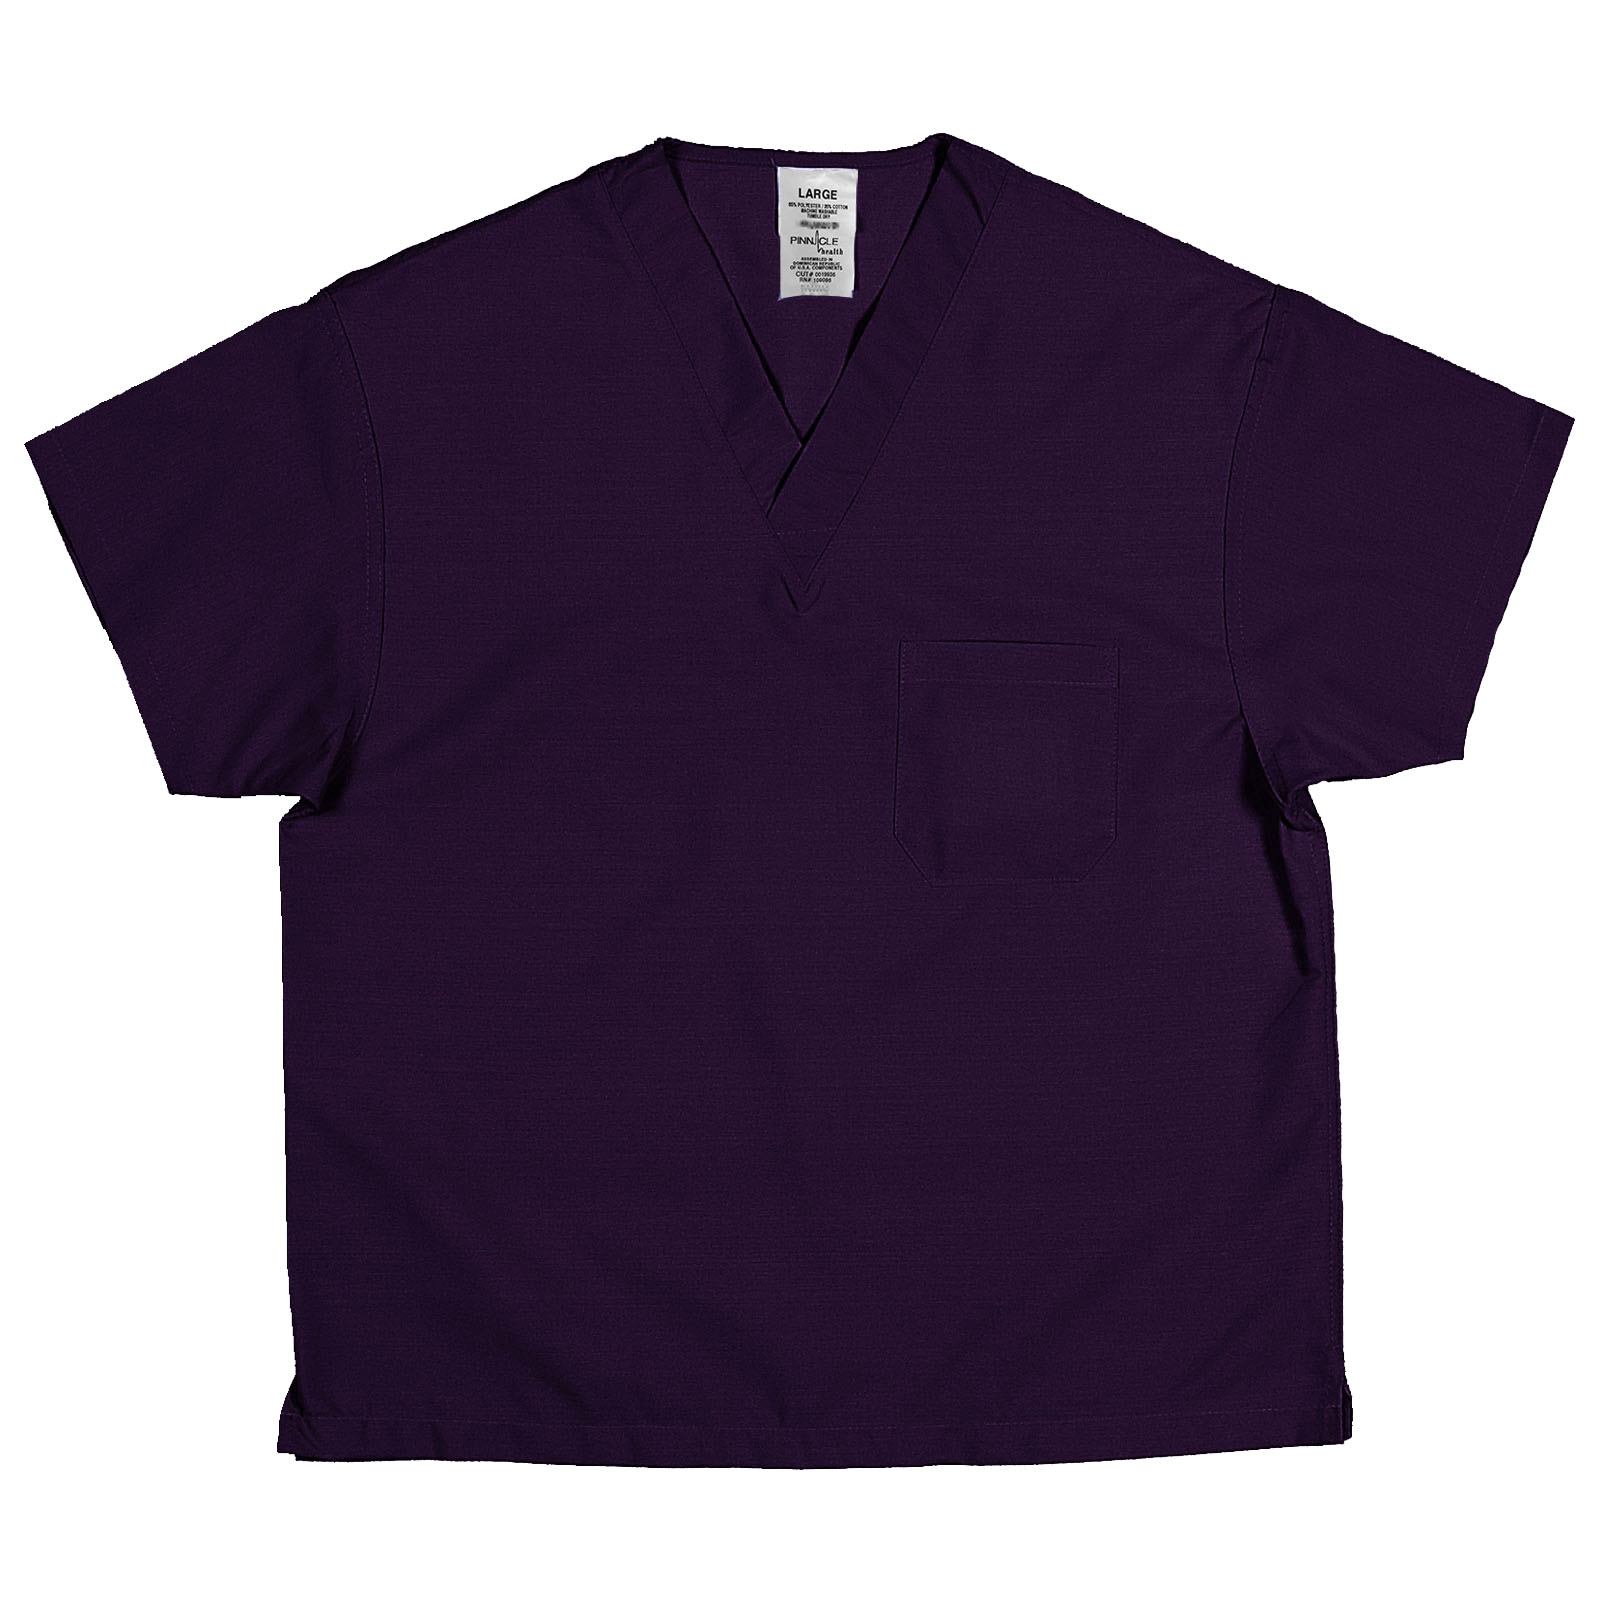 ST61U Purple - Scrub Top, Non-reversible, Unisex, 65/35